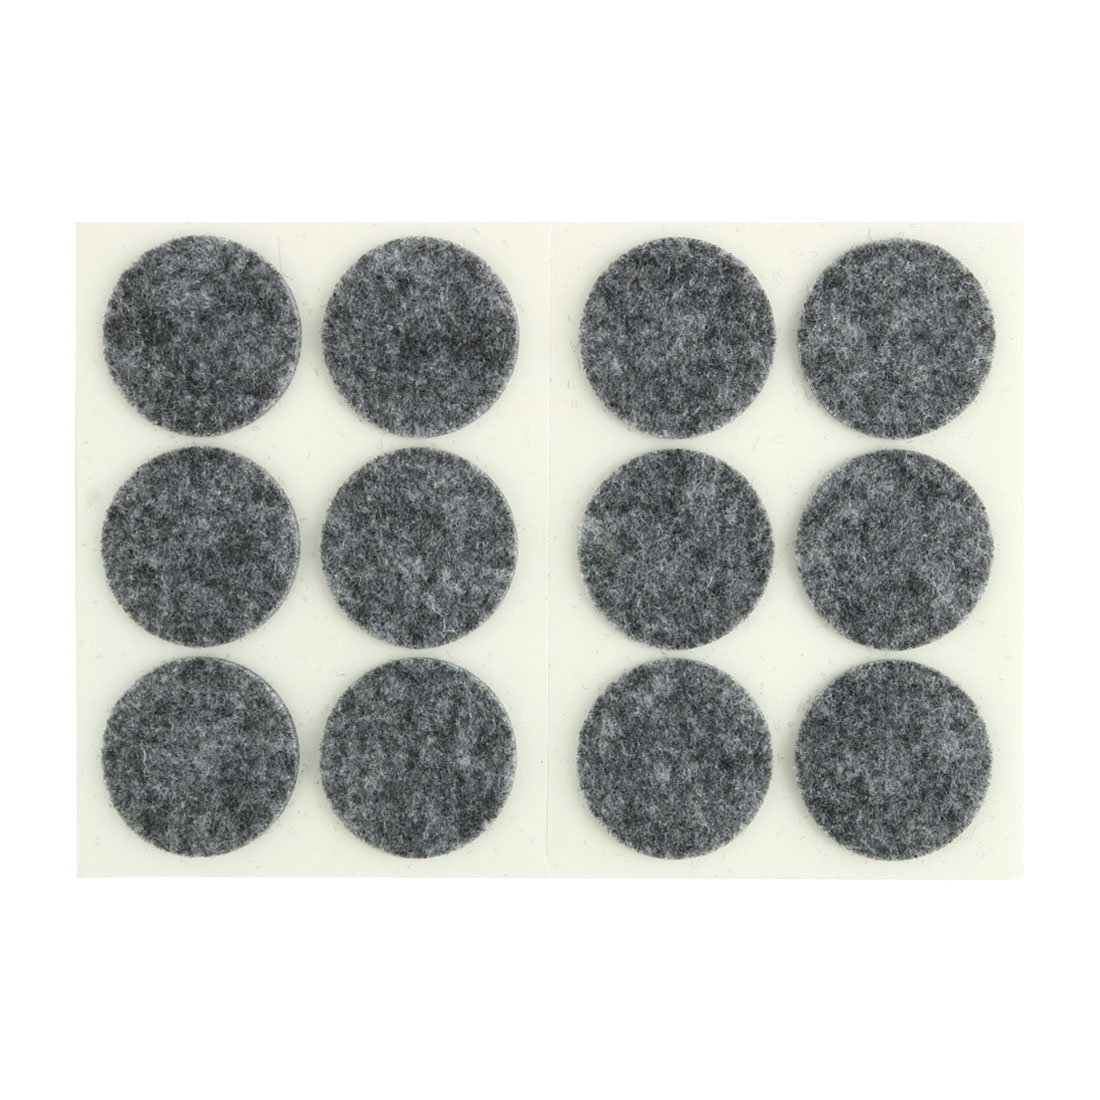 Table Chair Legs Self Adhesive Surface Protector Furniture Felt Pads Mats Gray 30mm Dia 12pcs